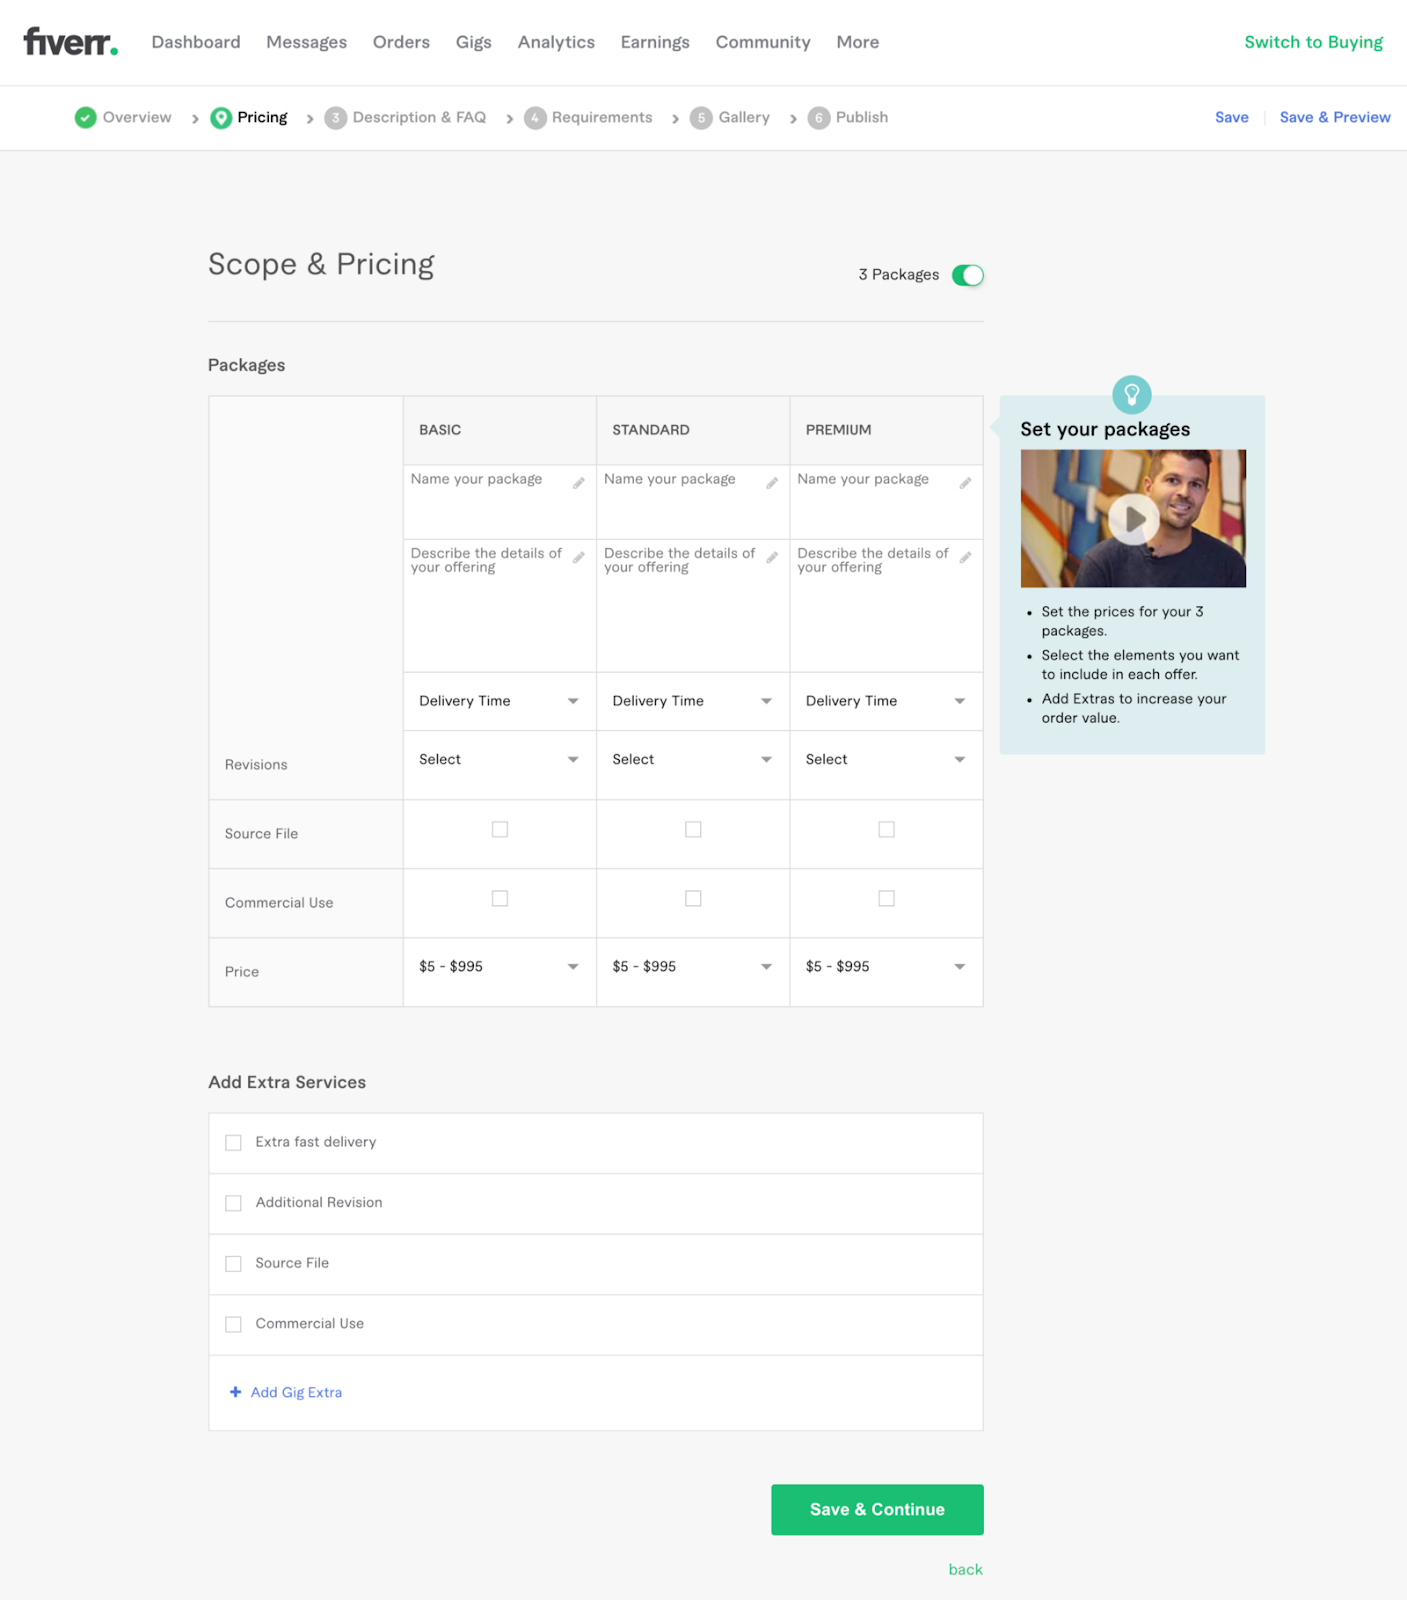 Step 2 in creating a gig on Fiverr. Choose scope, pricing, and extra services.